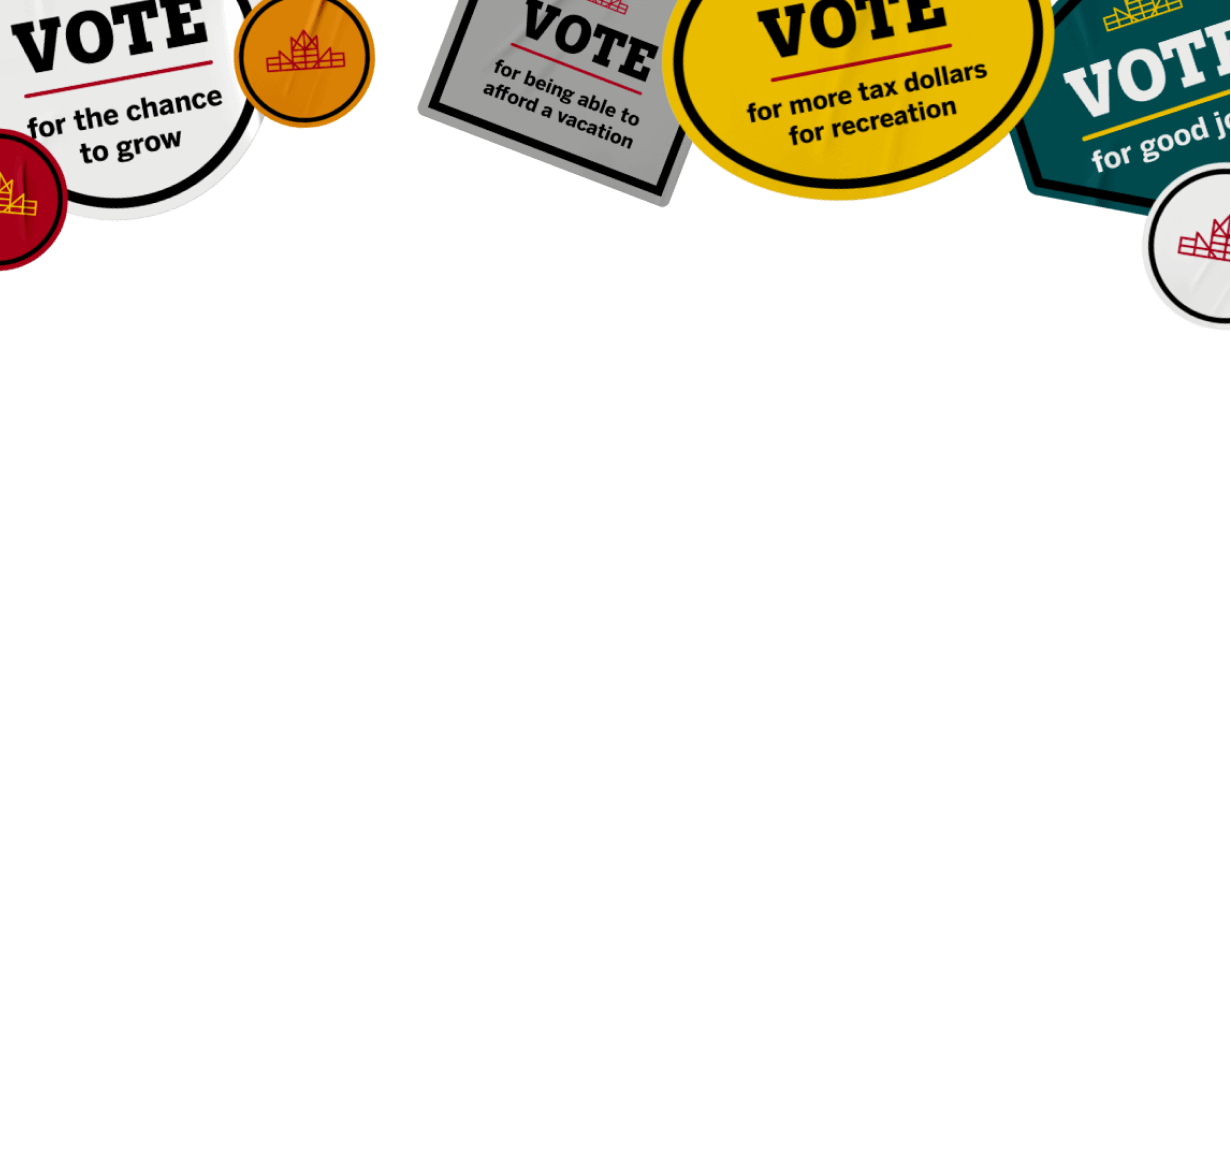 Group of decorative stickers call to vote.